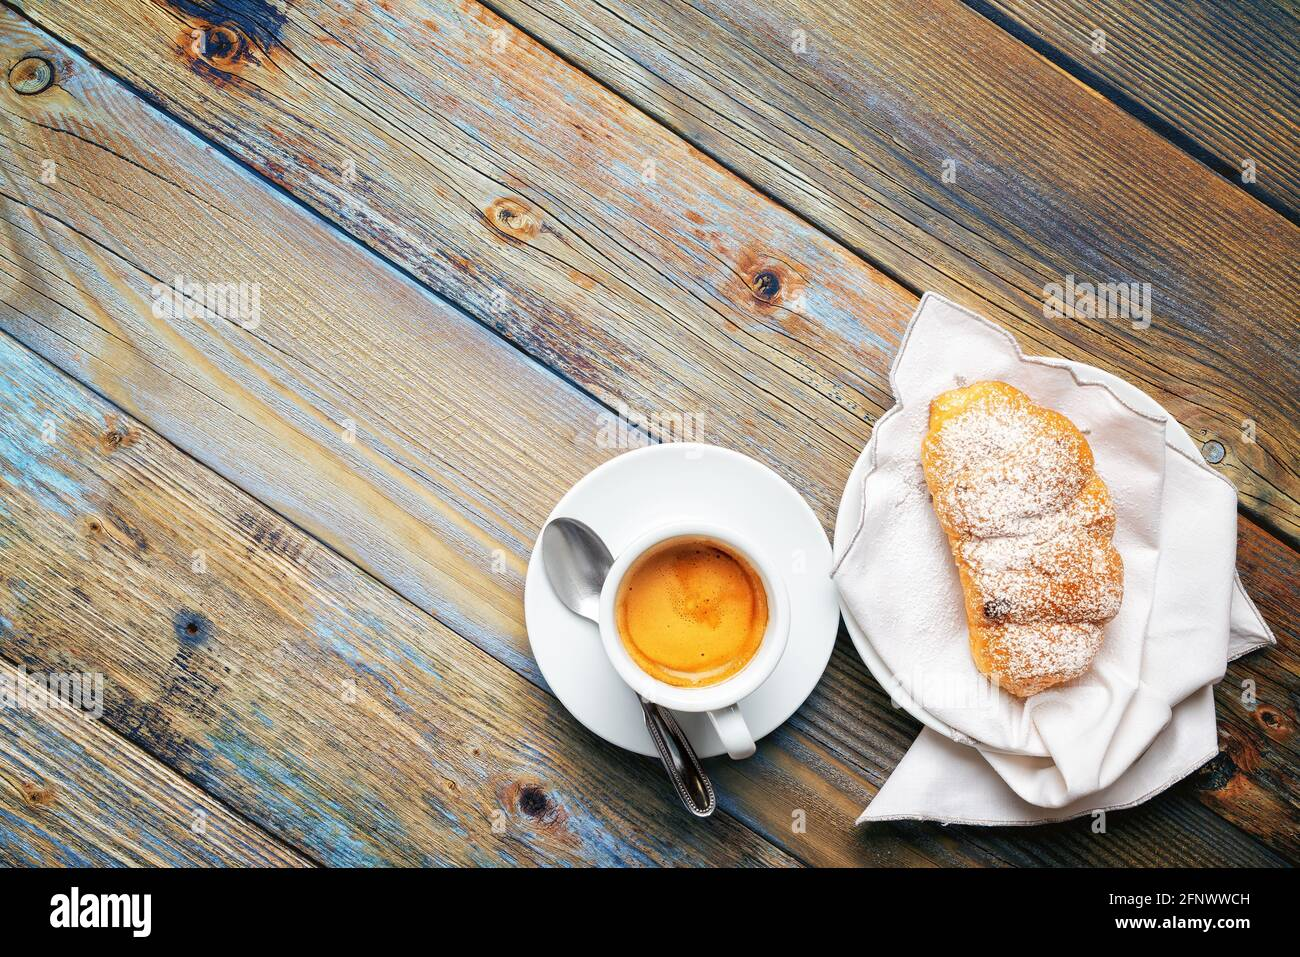 View from above. Cup of hot Italian espresso coffee and croissants on a light blue rustic wooden background. Food and drink. Lifestyle. Stock Photo